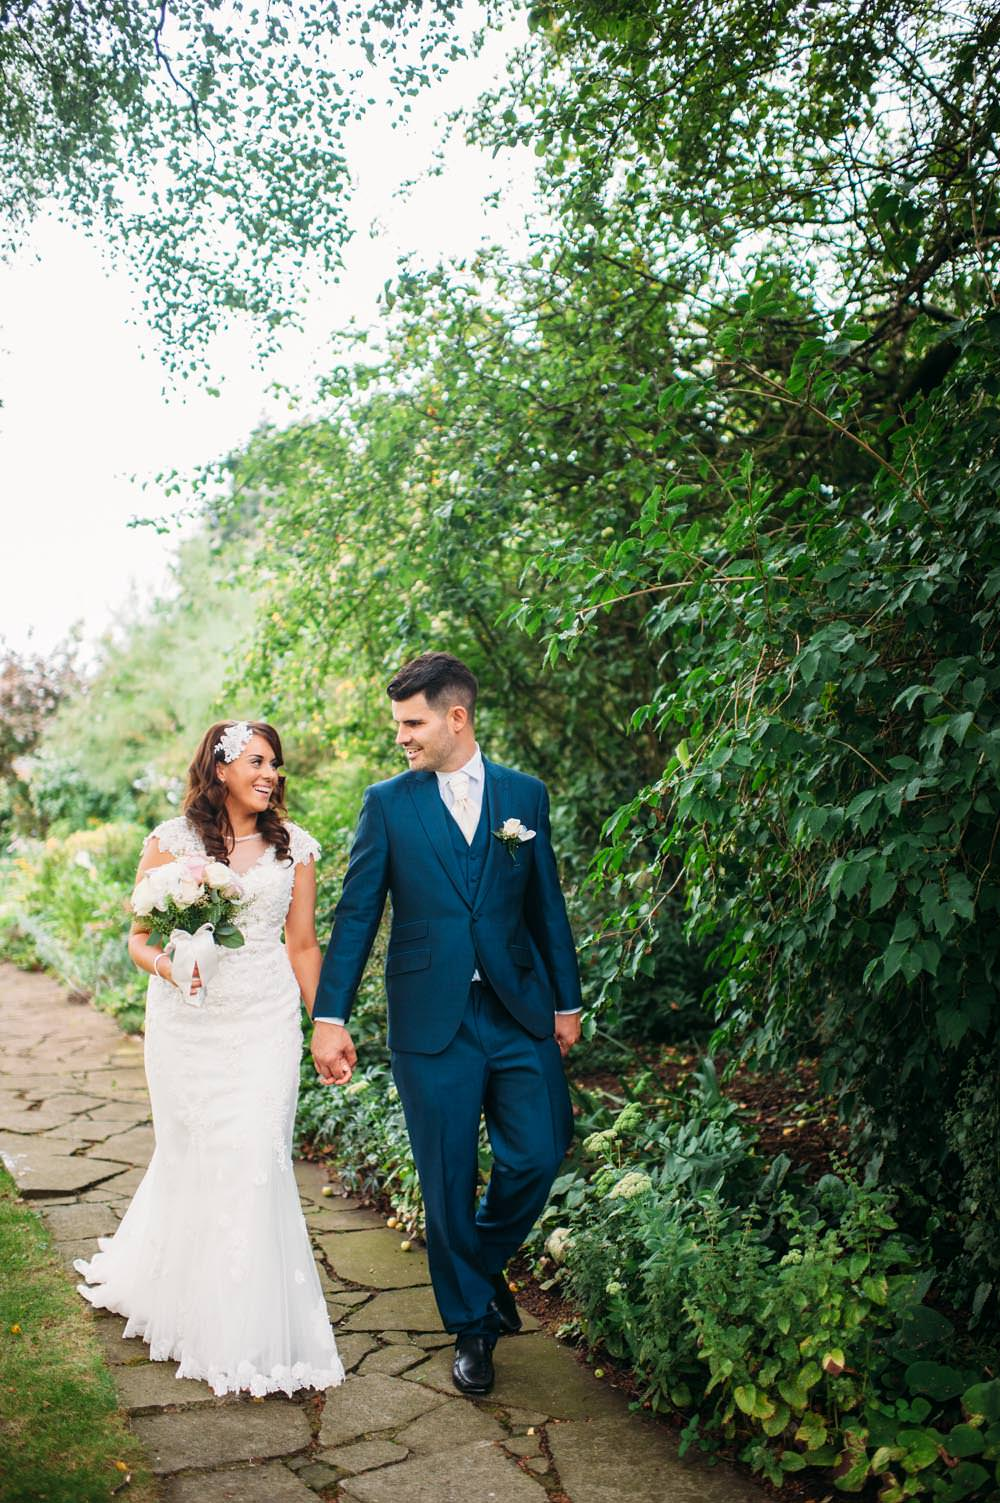 Lace justin alexander wedding dress with pastel bridesmaids navy image by a hrefhttphannah may image by hannah may lace justin alexander fishtail gown for a family orientated classic wedding with navy ombrellifo Choice Image